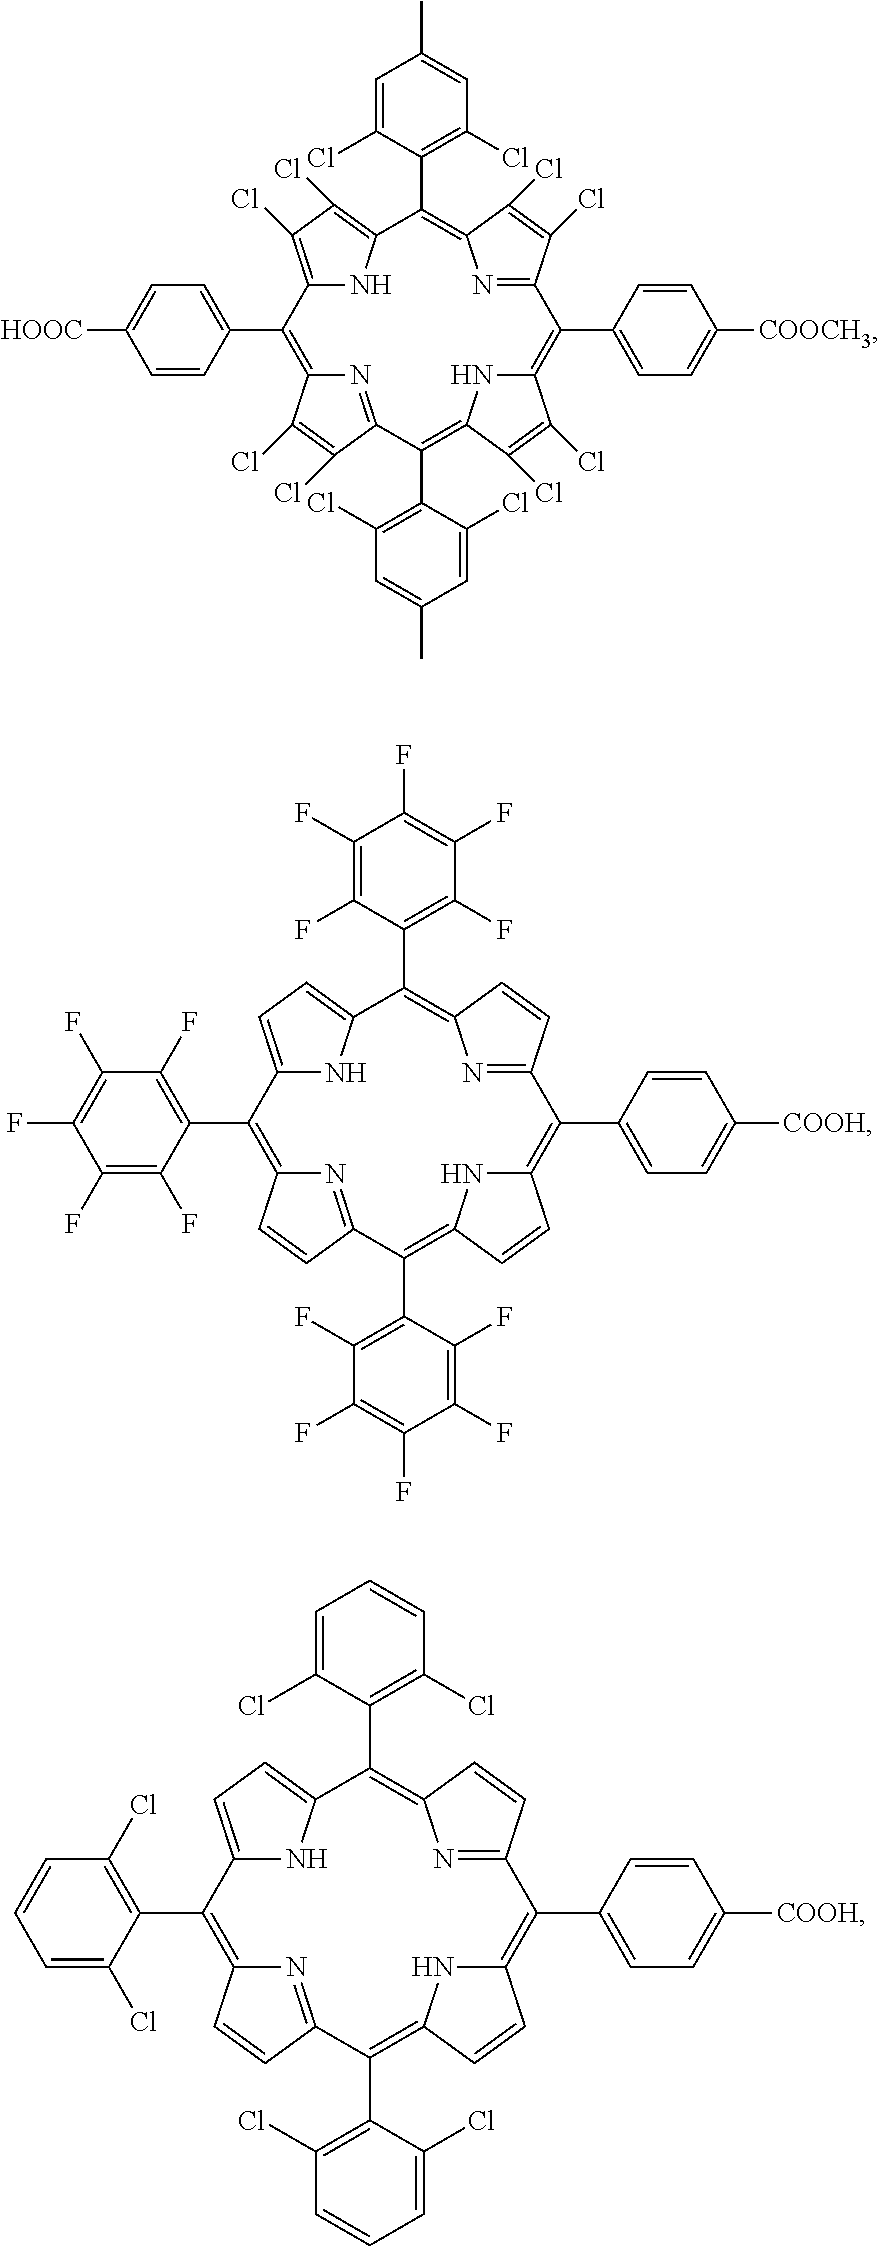 US B2 Nanostructures systems and methods for